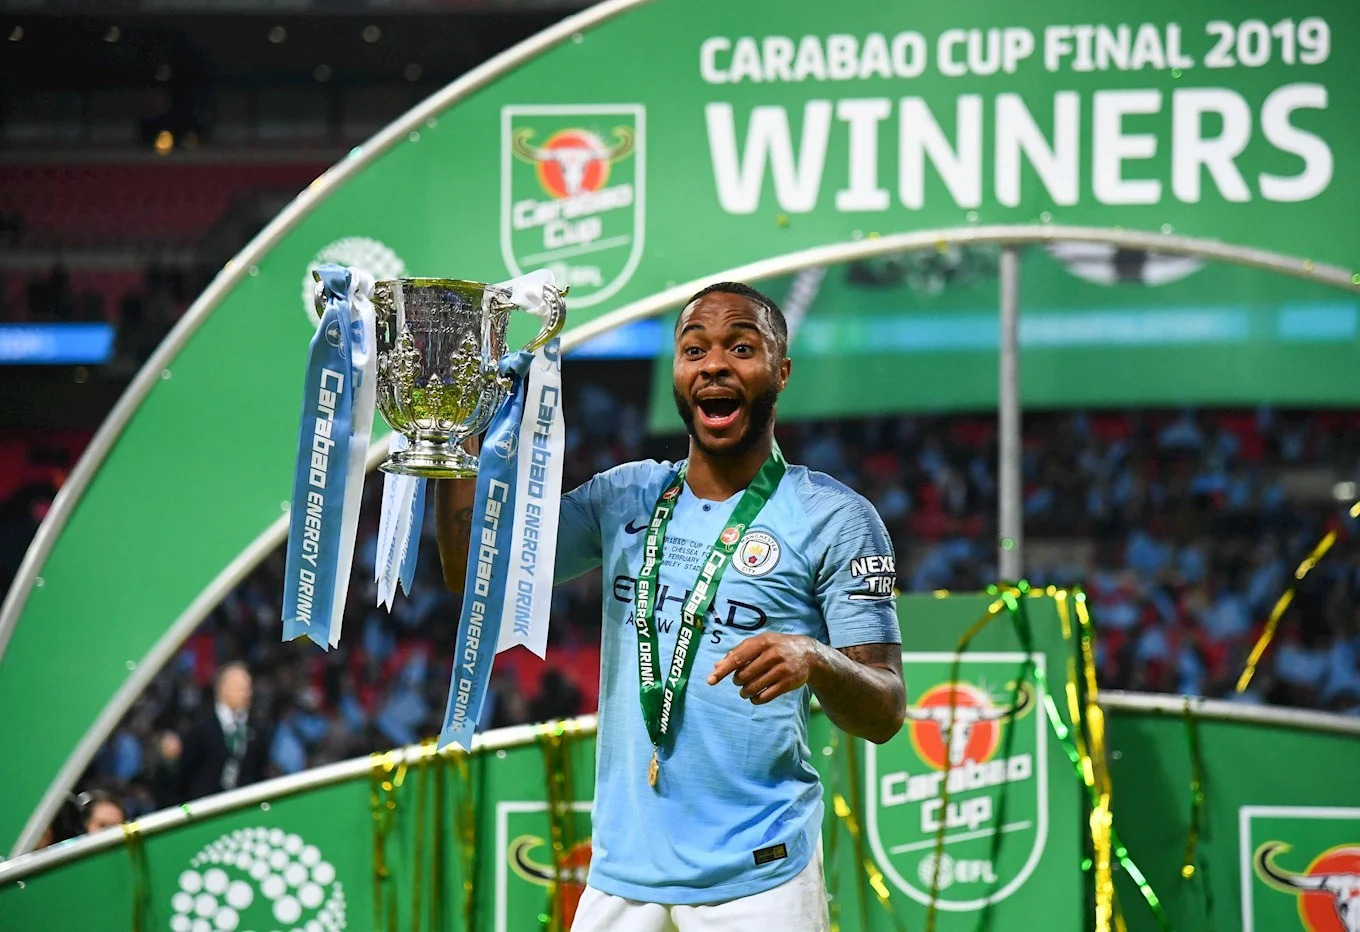 Sky reportedly to receive £25 million Carabao Cup rebate – Digital TV Europe